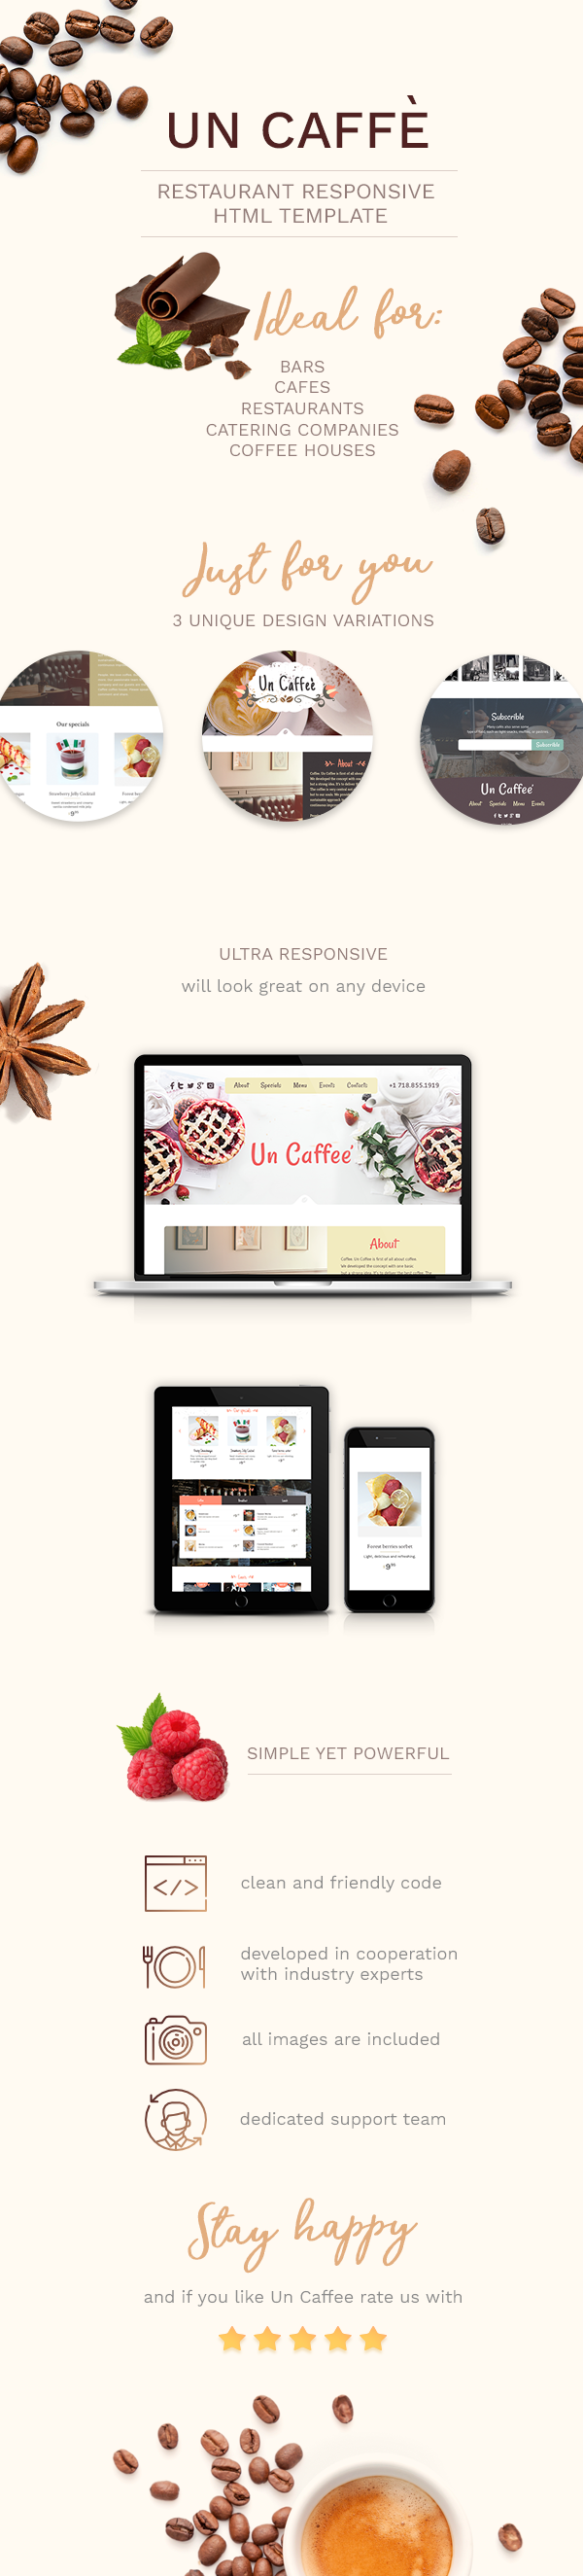 Un Caffe - Coffeehouse and Restaurant HTML Template - 1